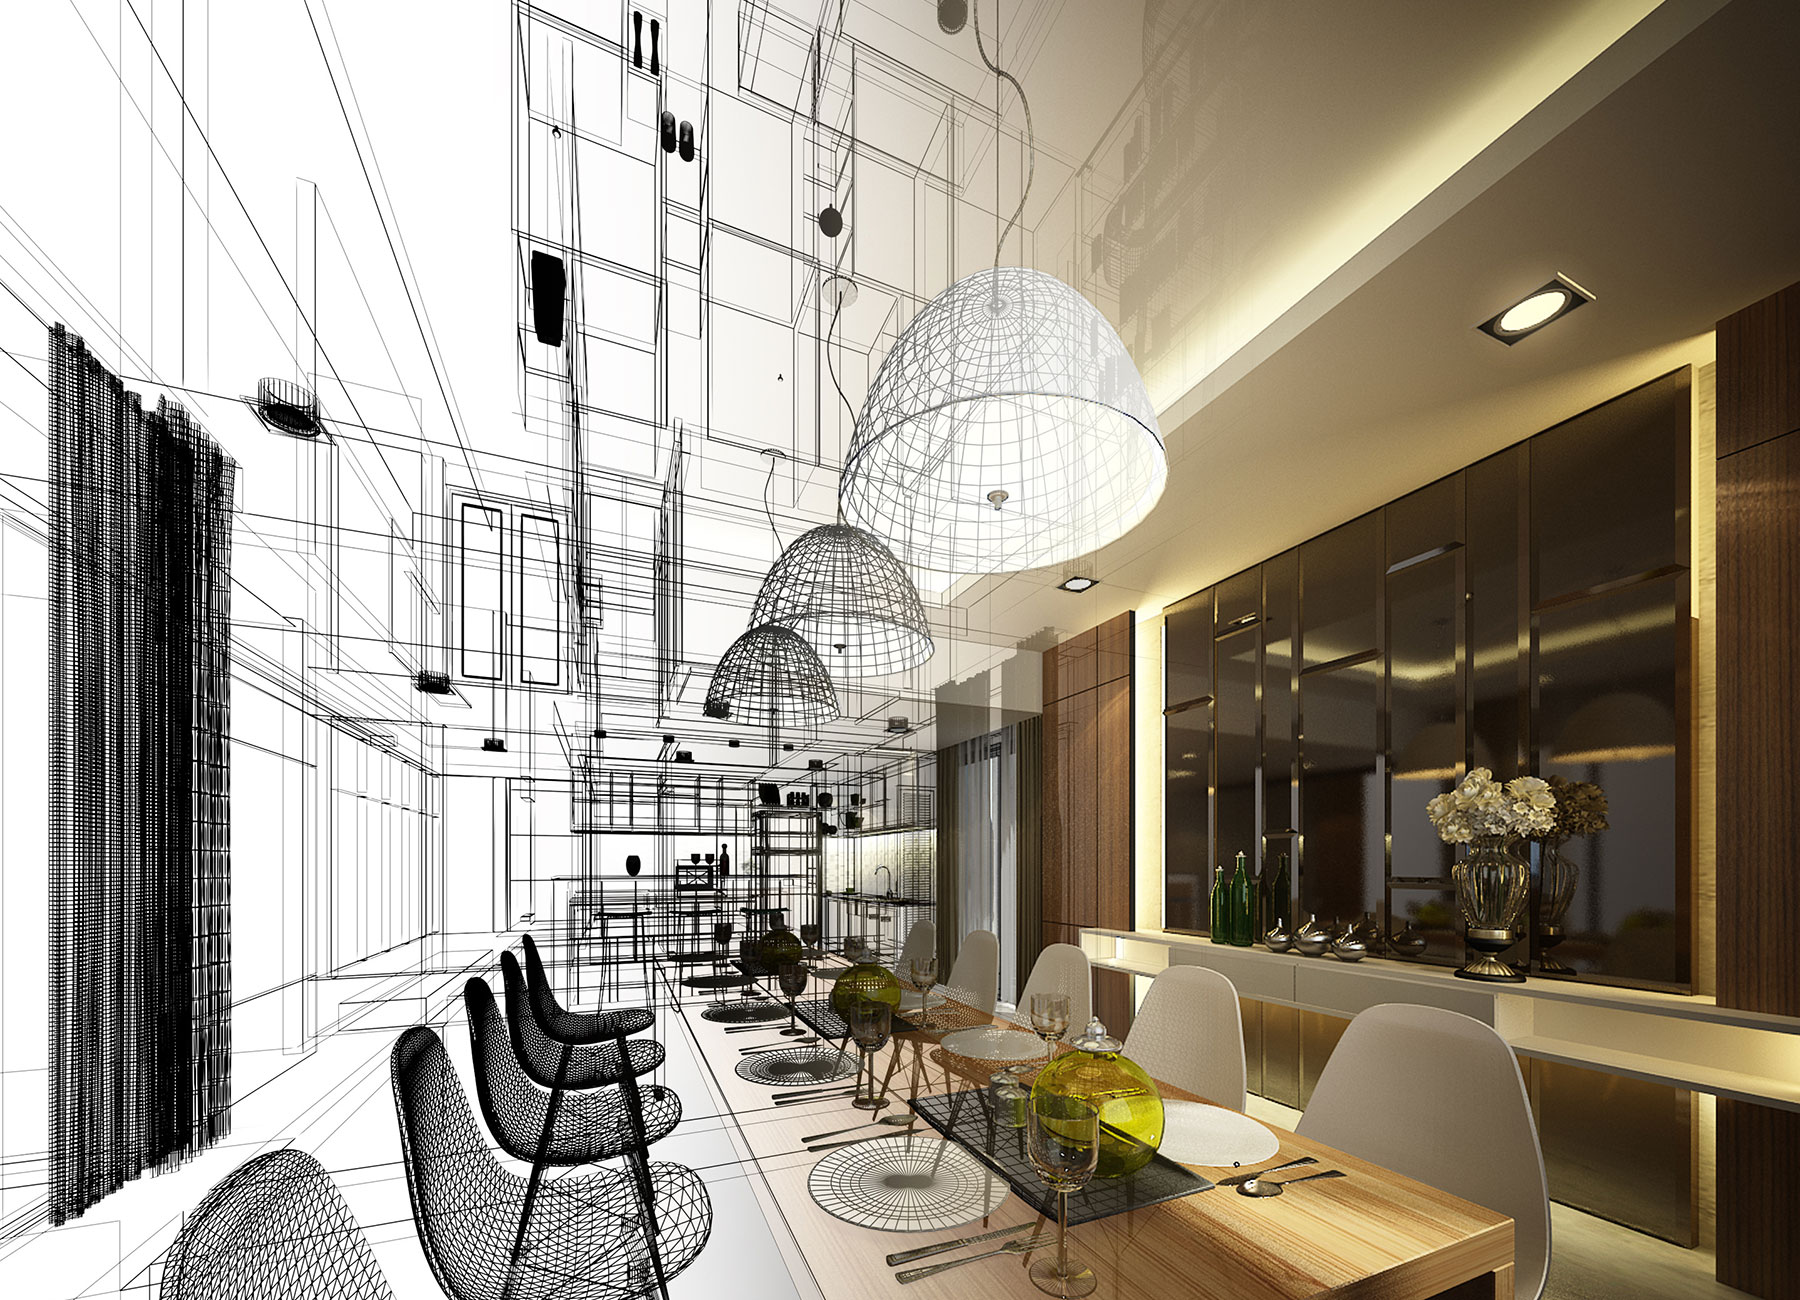 Luxury interior design for commercial interiors by for Corporate interior design